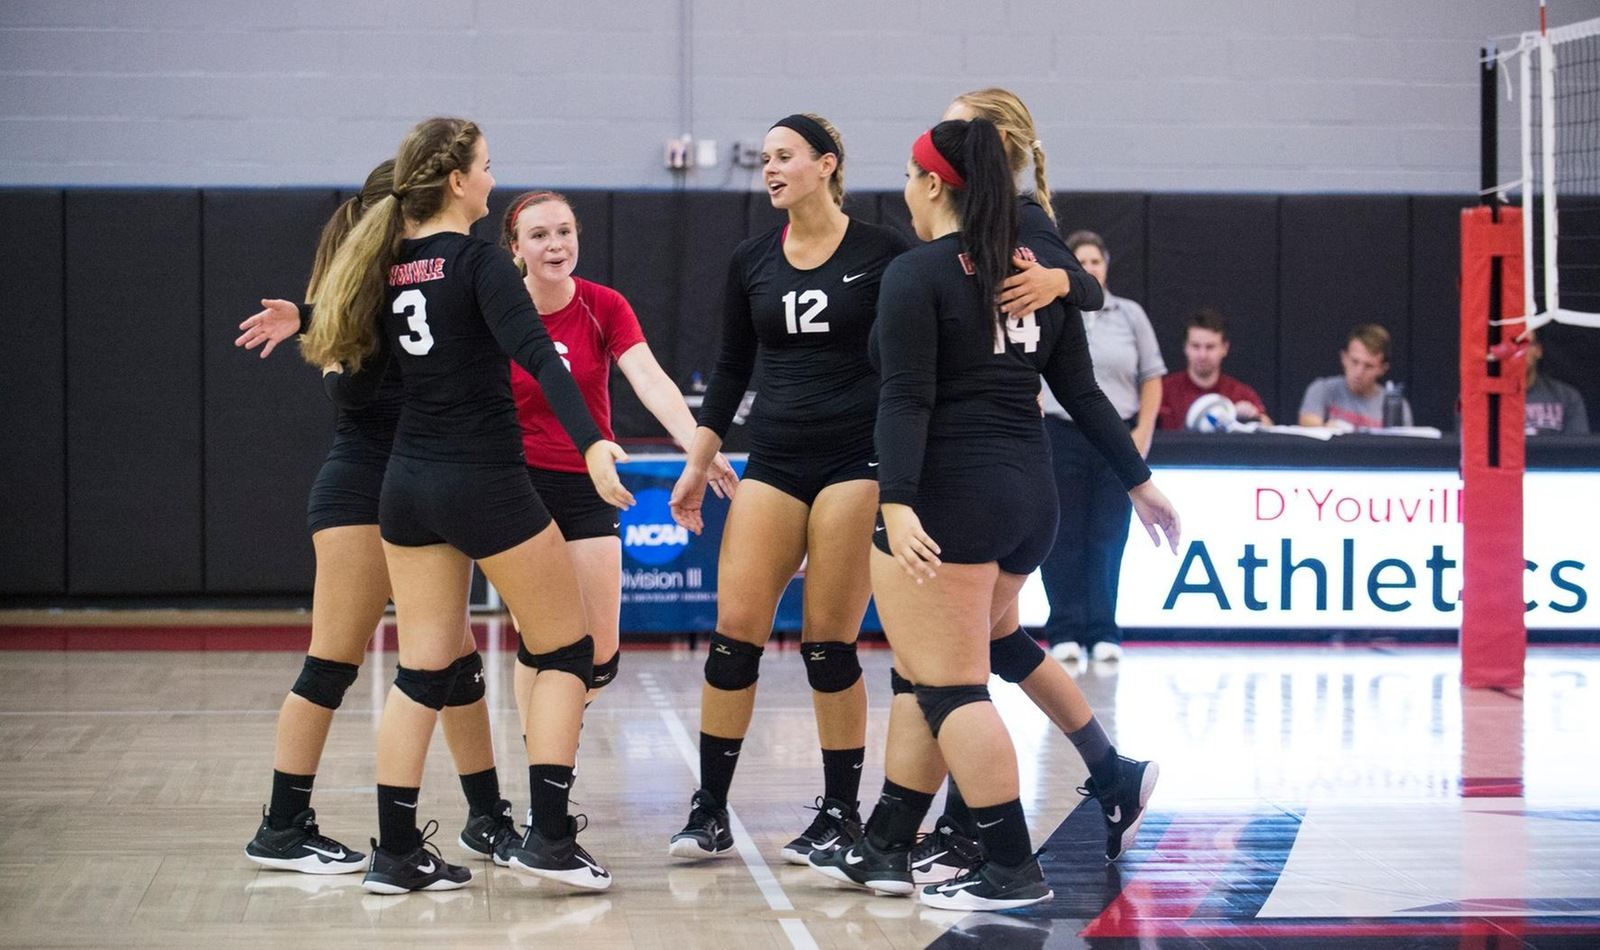 Women's Volleyball Earns First Conference Win with Big Victory over Behrend